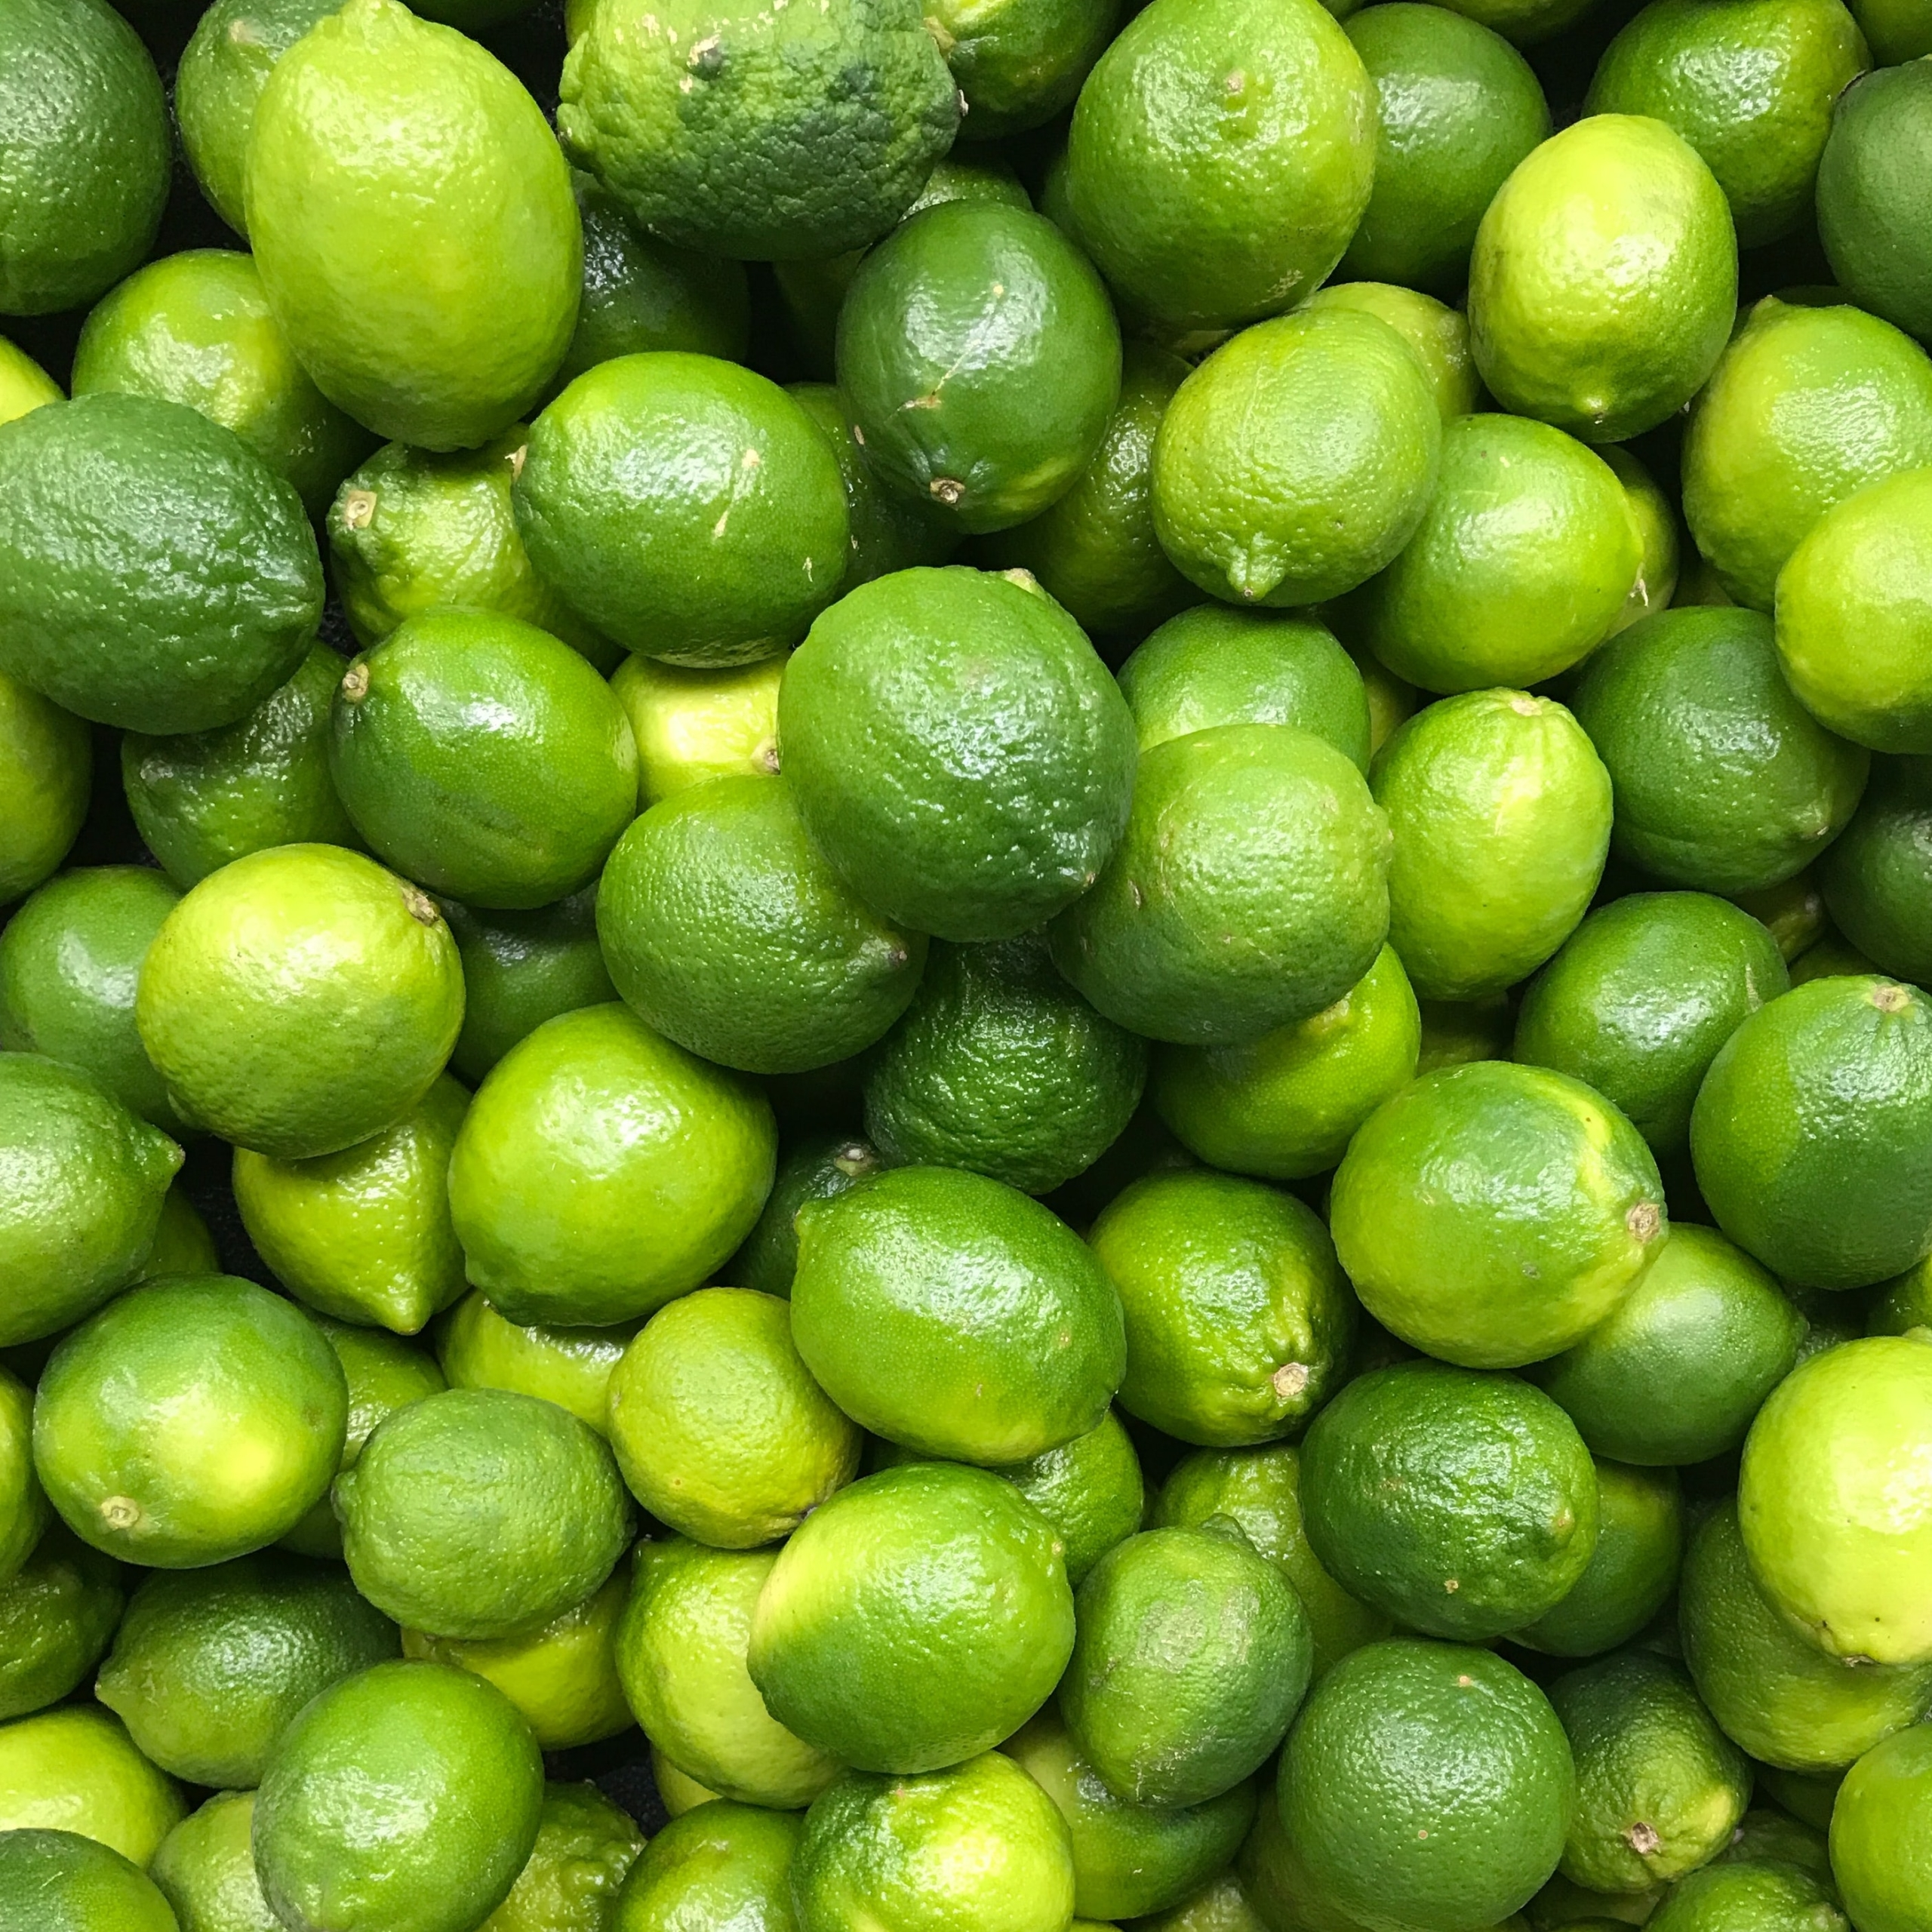 bunch of whole limes